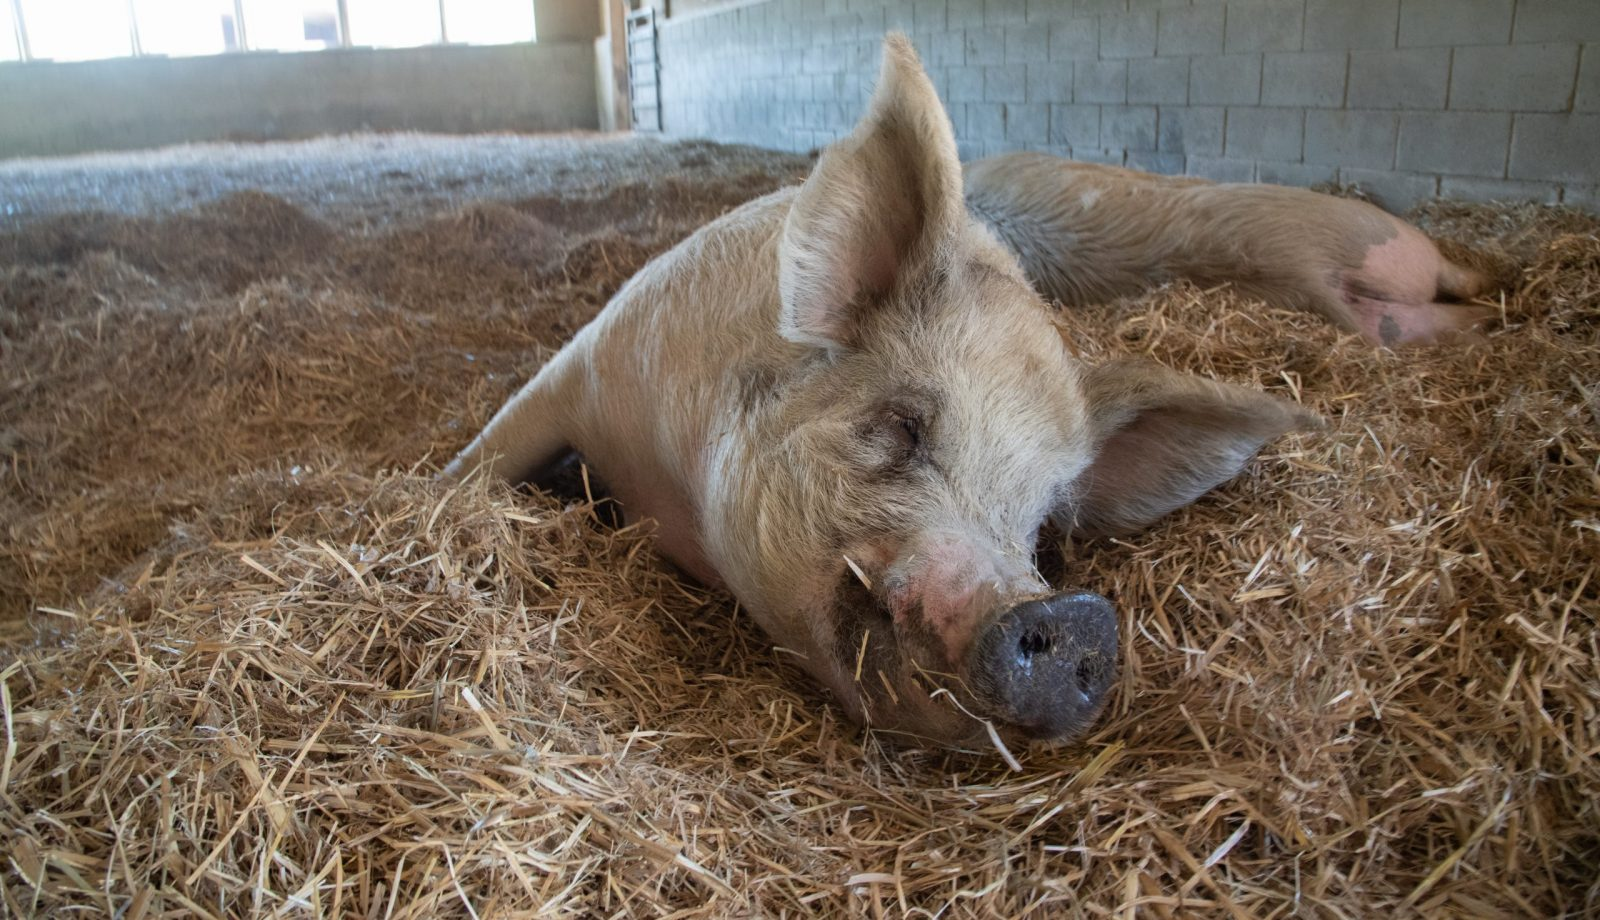 Maggie Pig at Farm Sanctuary's New York shelter